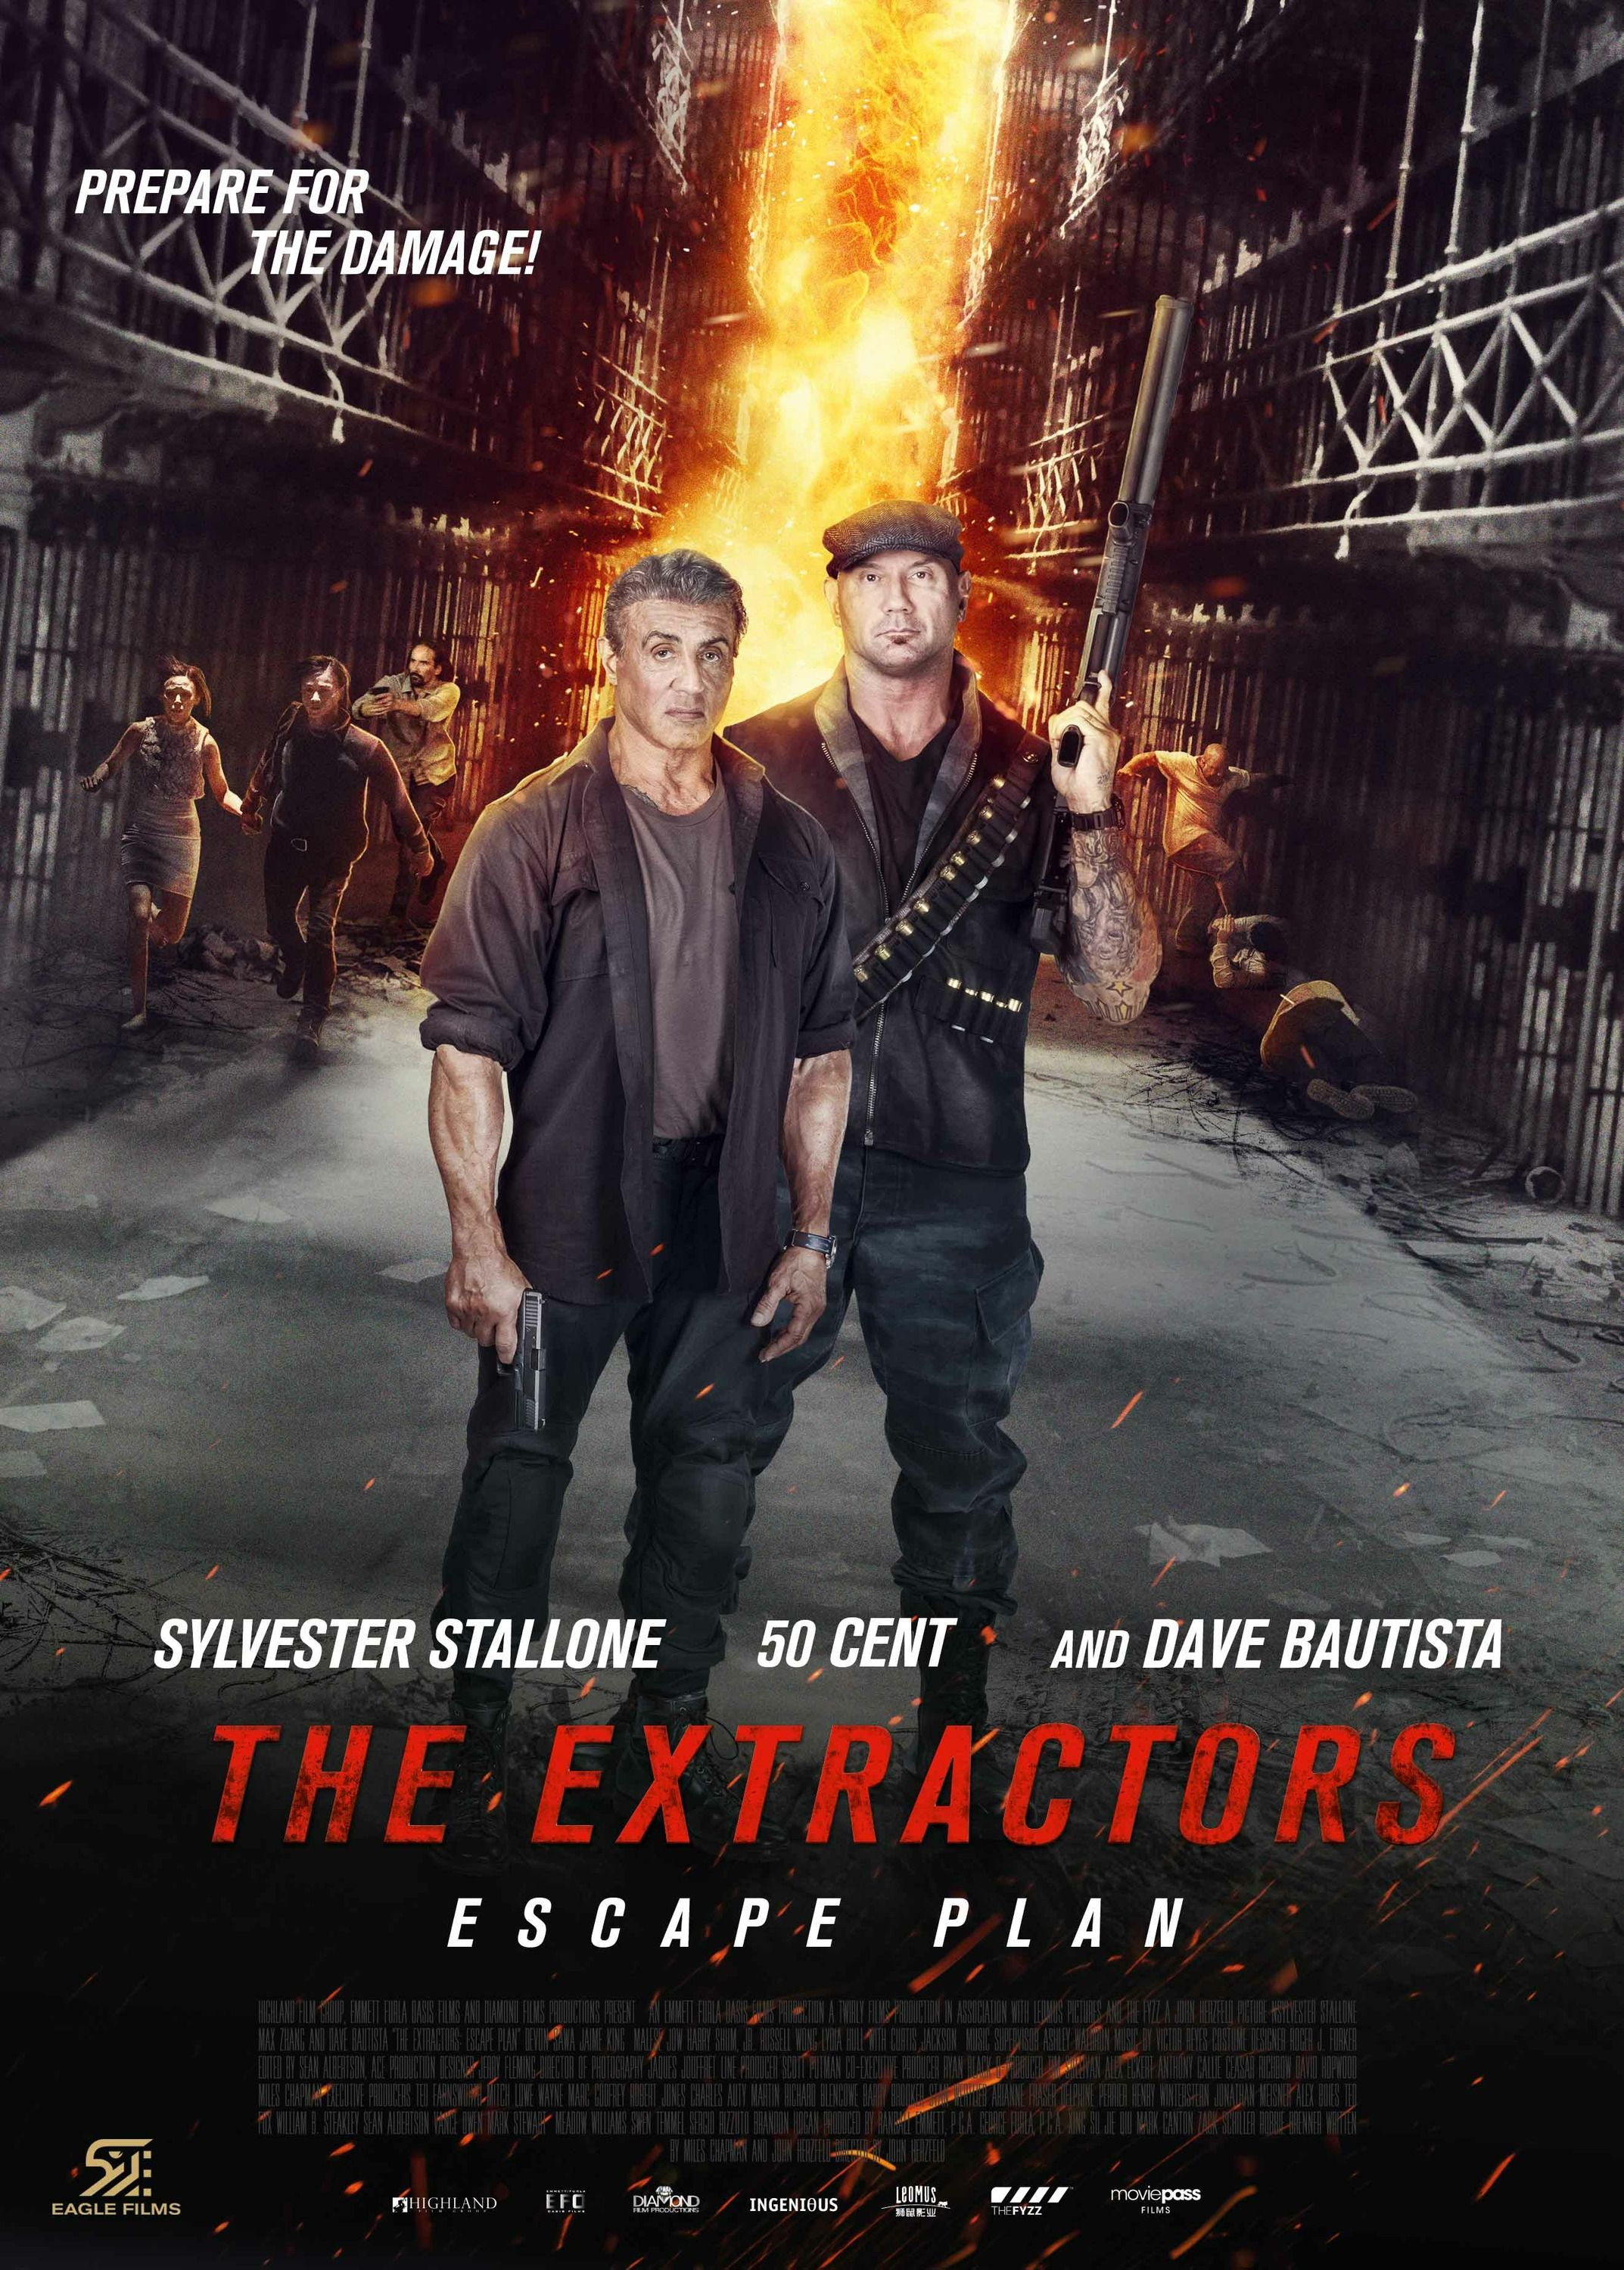 Escape Plan The Extractors 2019 Goruntuler Ile Film